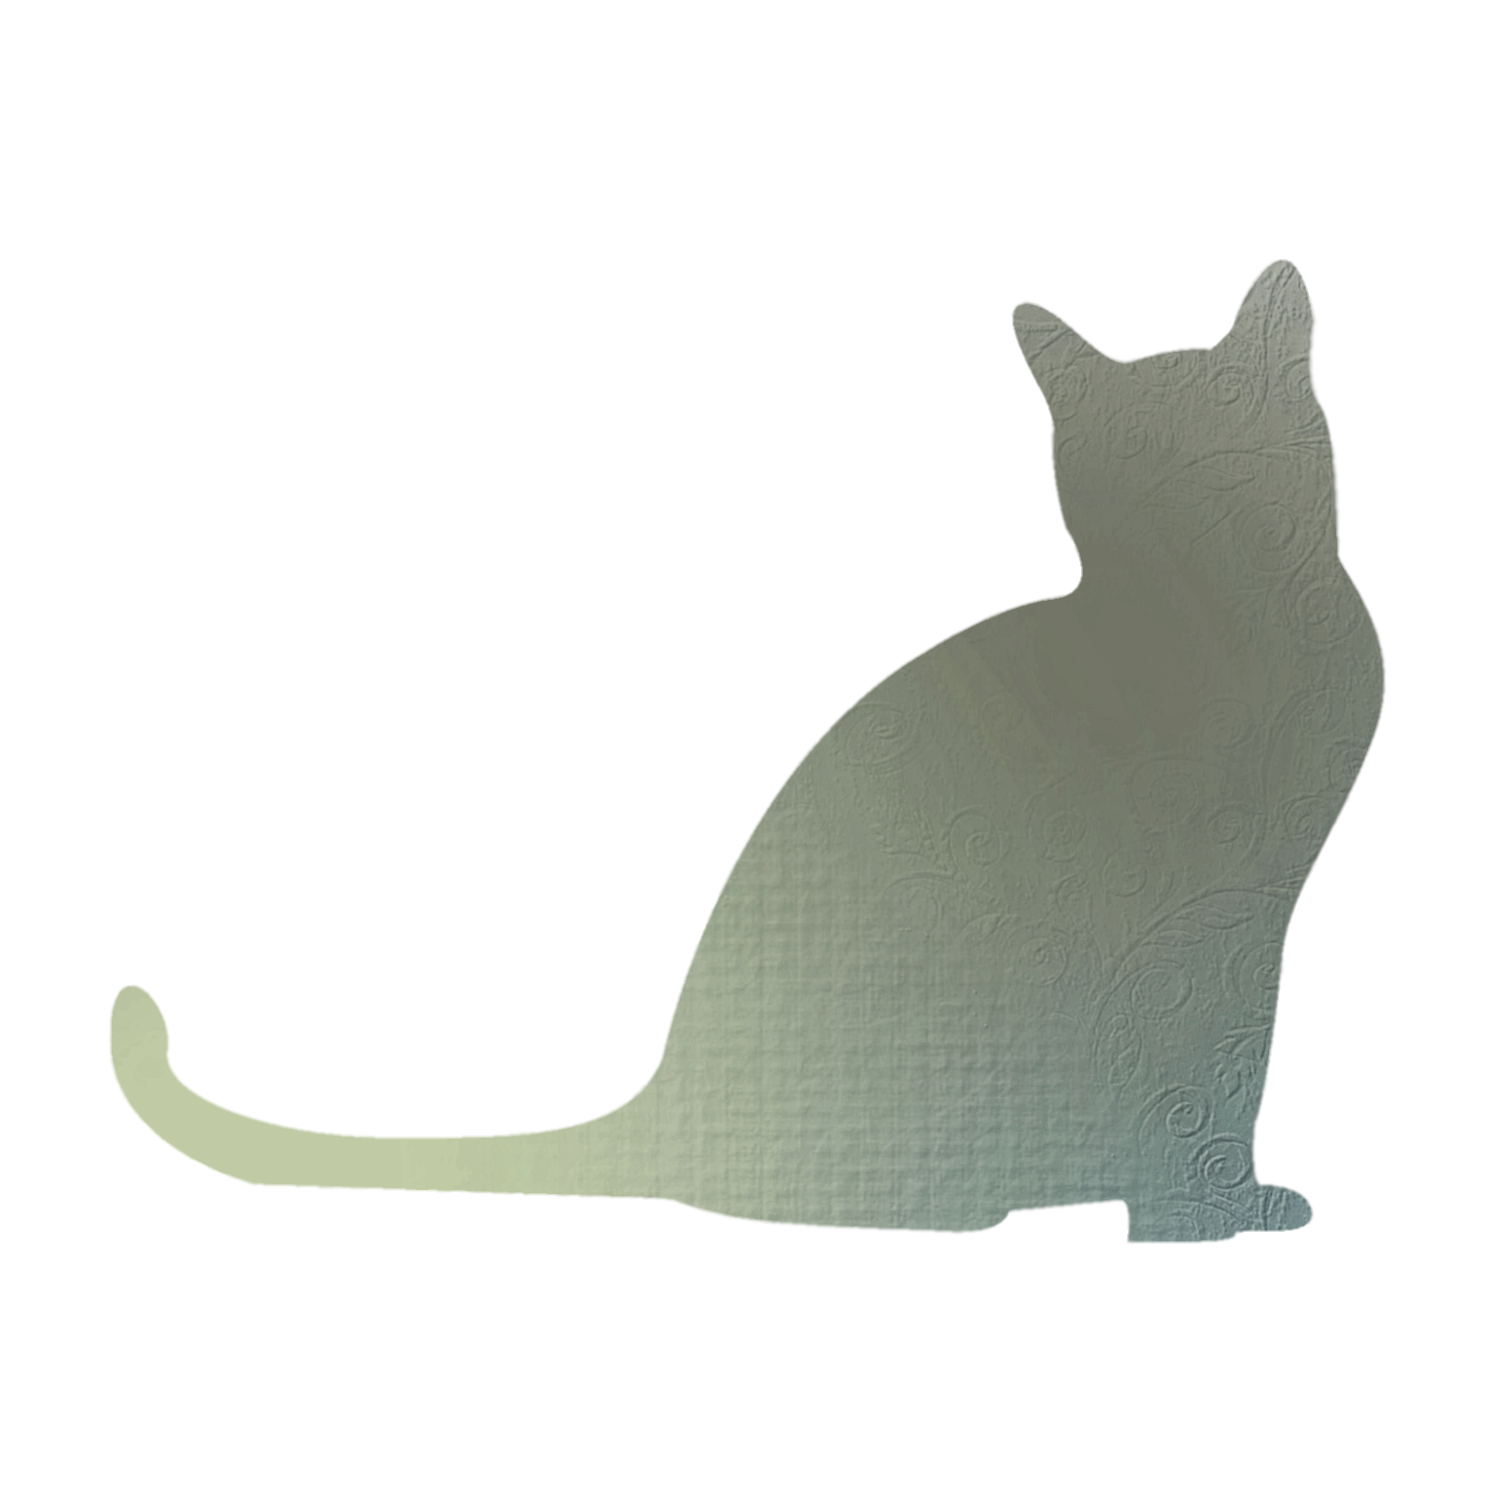 Cat ears and whiskers clipart jpg free download Whiskers Cat Shadow Clip art - Cat Movies 1500*1500 transprent Png ... jpg free download